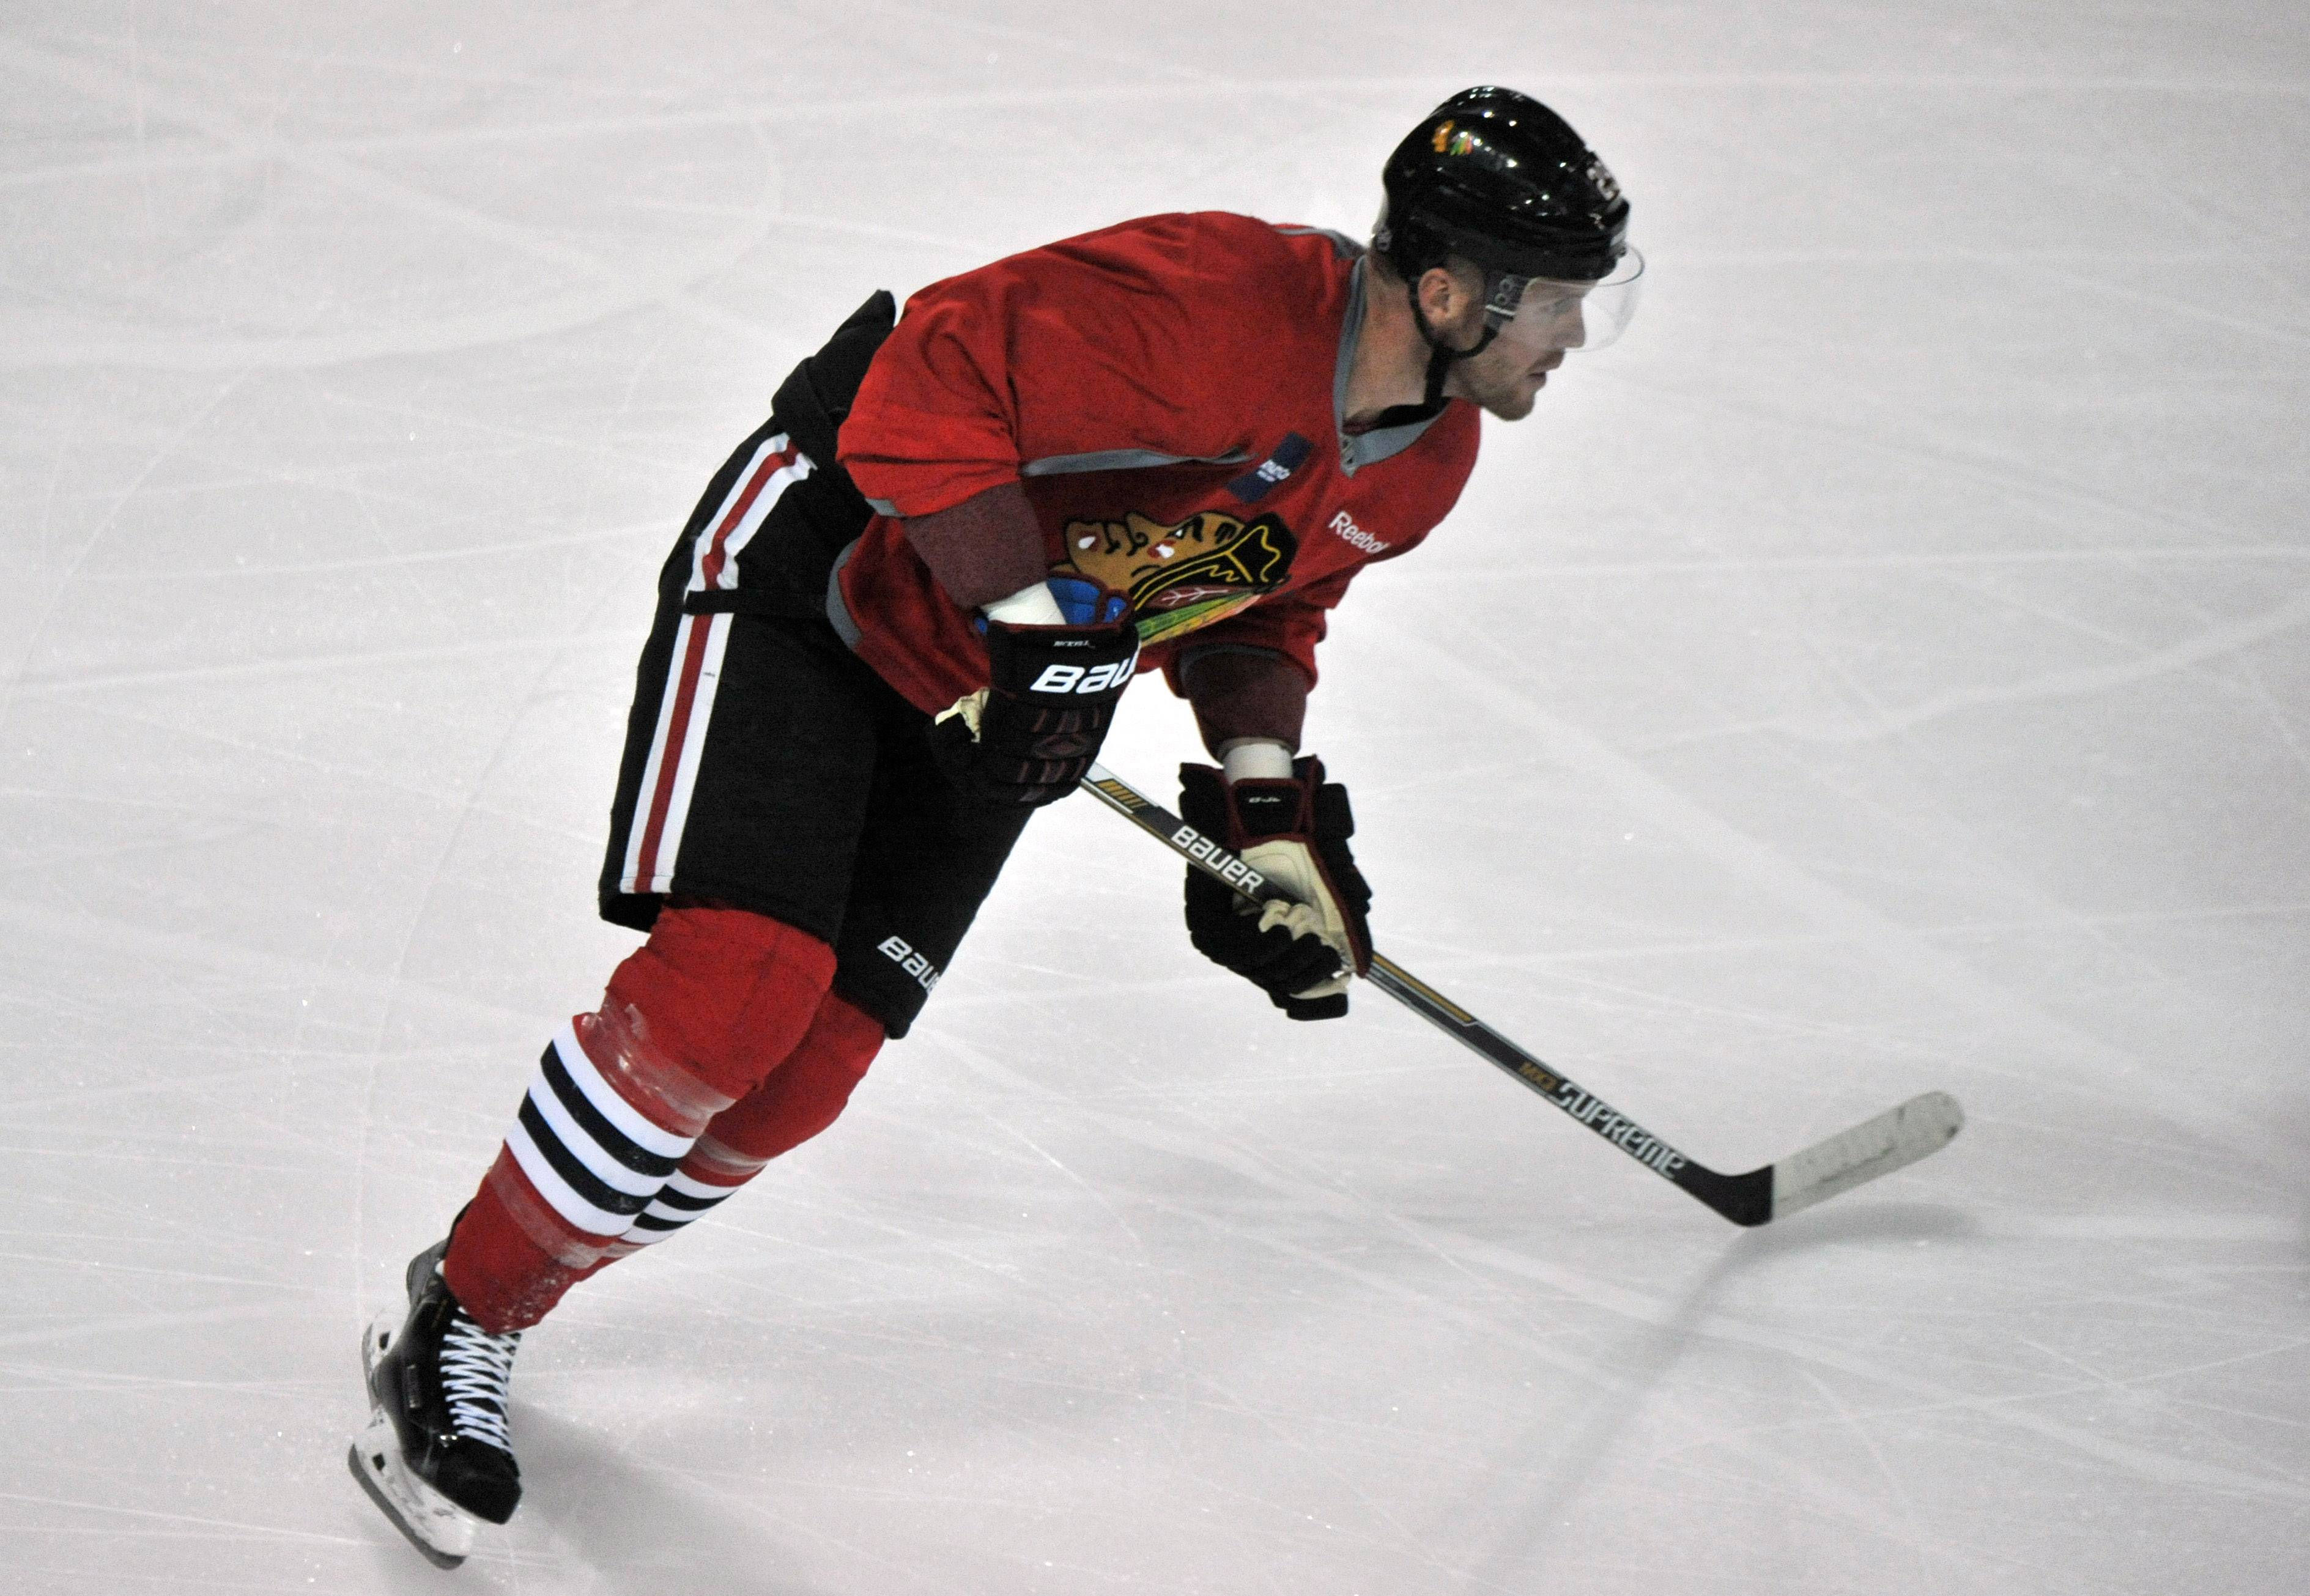 Bryan Bickell is back in the AHL for the first time since 2009-10, and he's doing all he can to work his way back to the NHL.